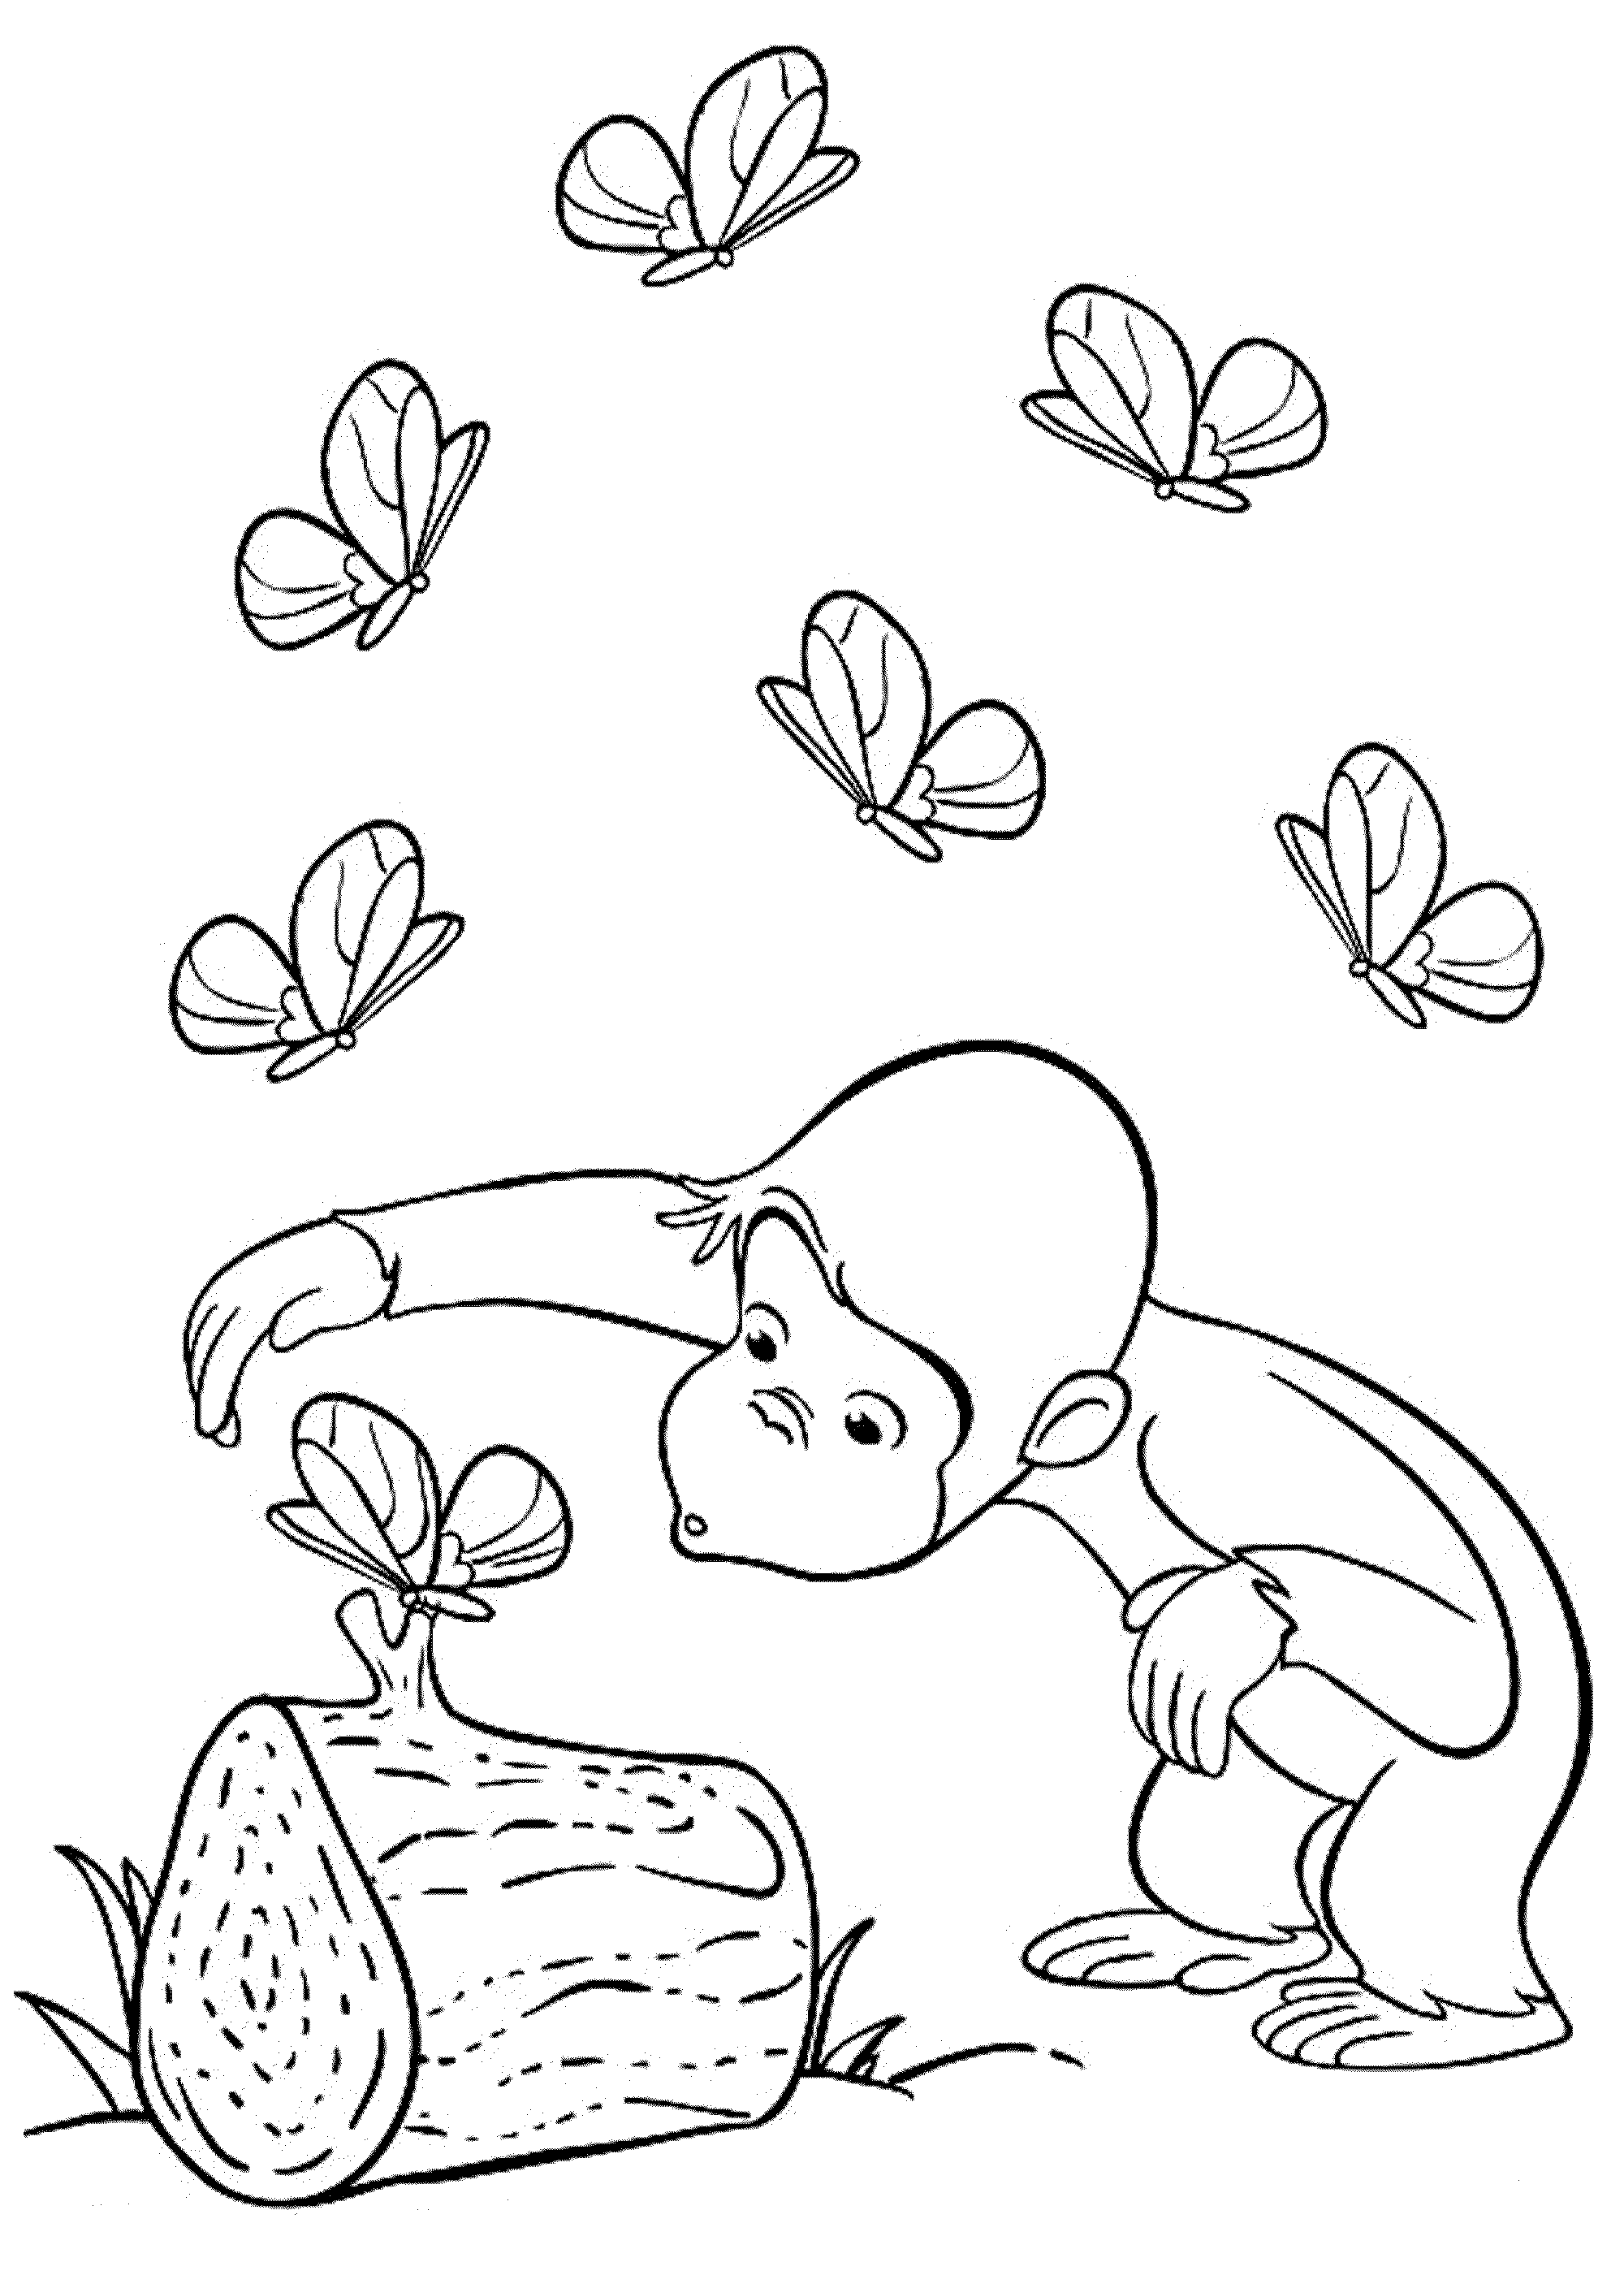 monkey george coloring pages - photo#36